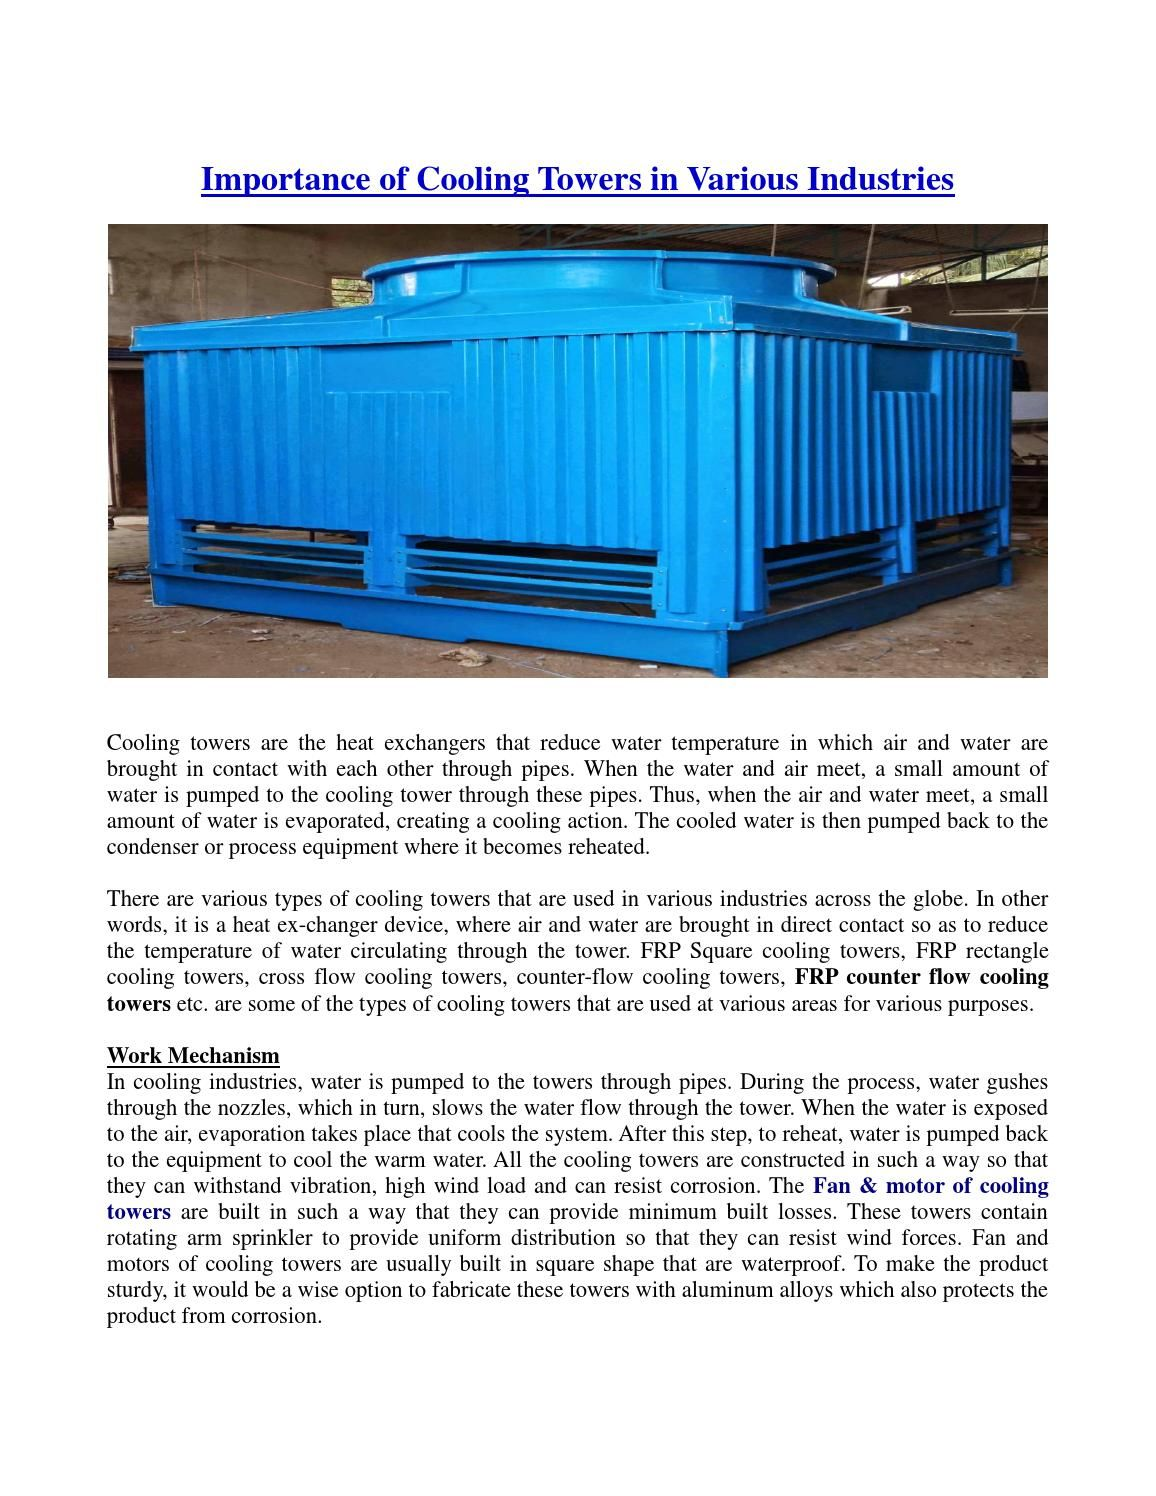 Importance Of Cooling Towers In Various Industries Cool Stuff Tower Cooling Tower